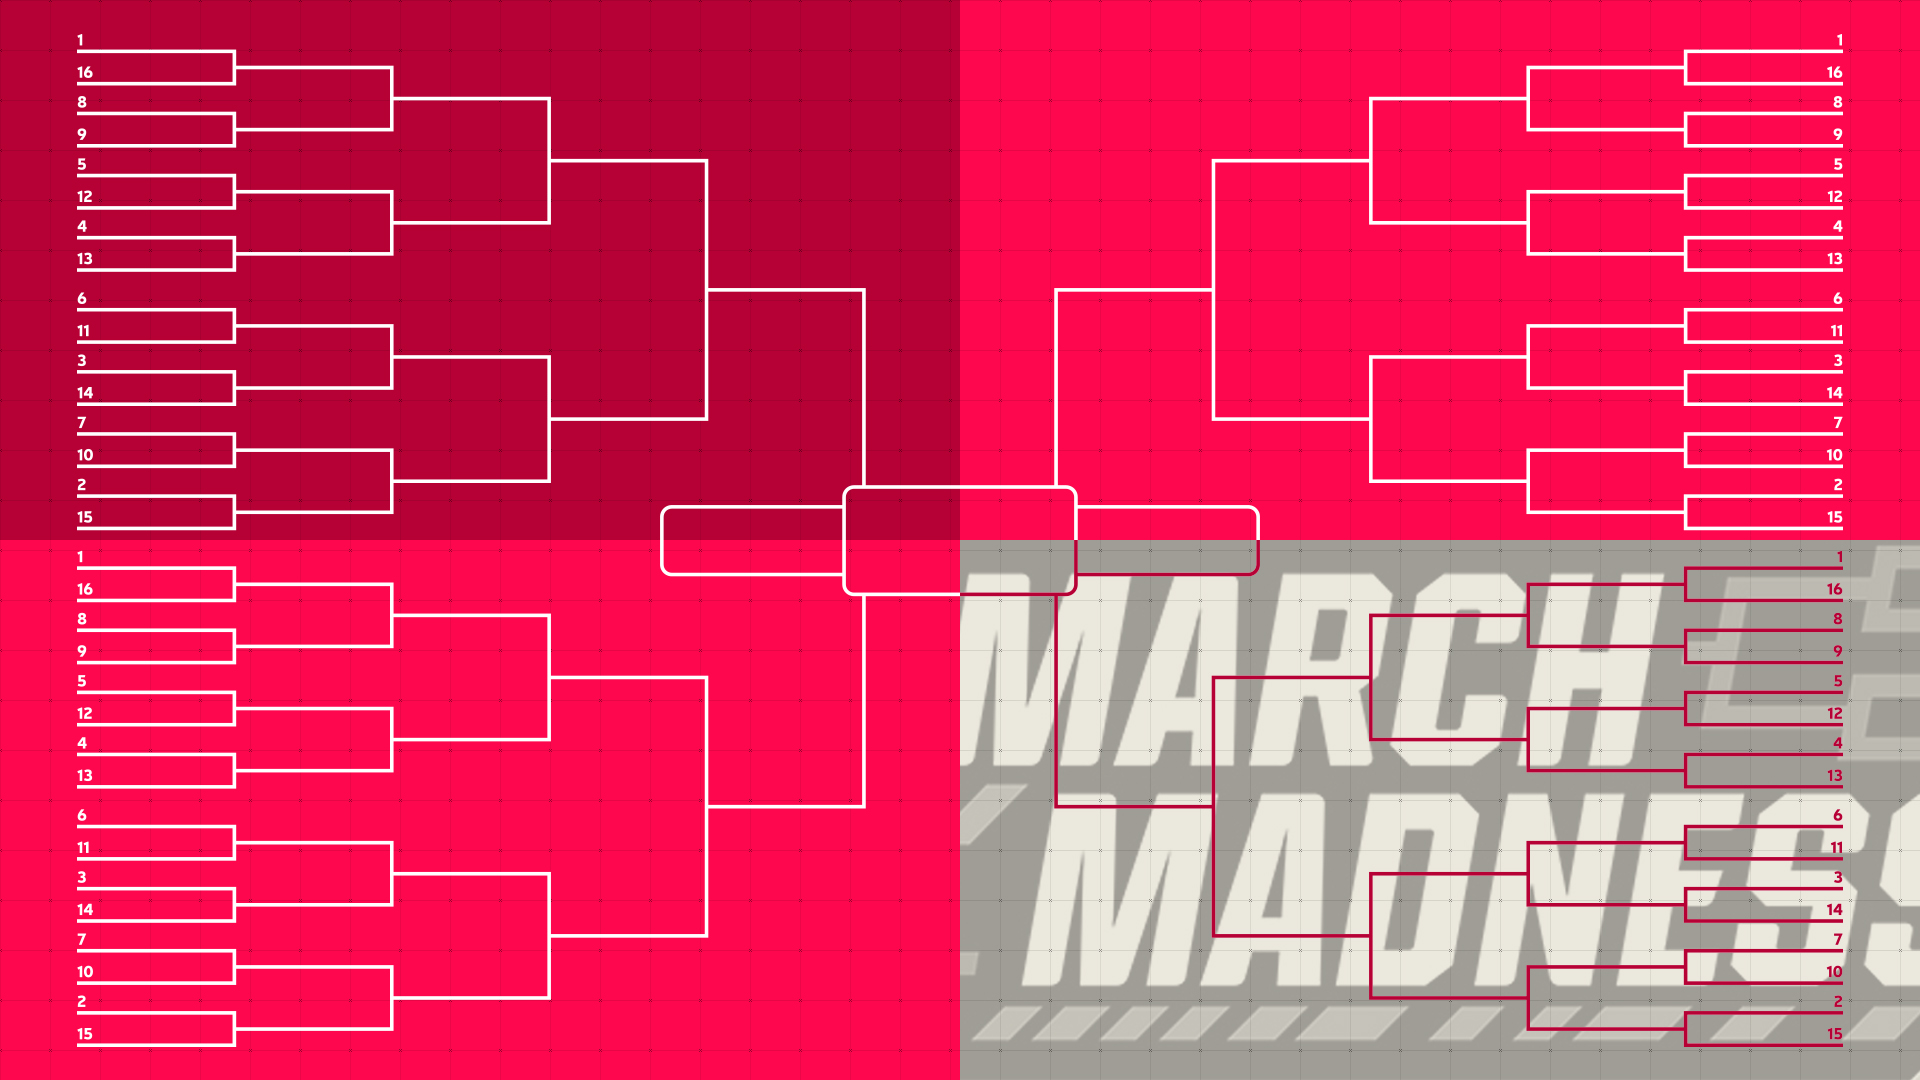 photograph relating to Printable Tournament Bracket named March Insanity 2019 bracket: Printable NCAA Match